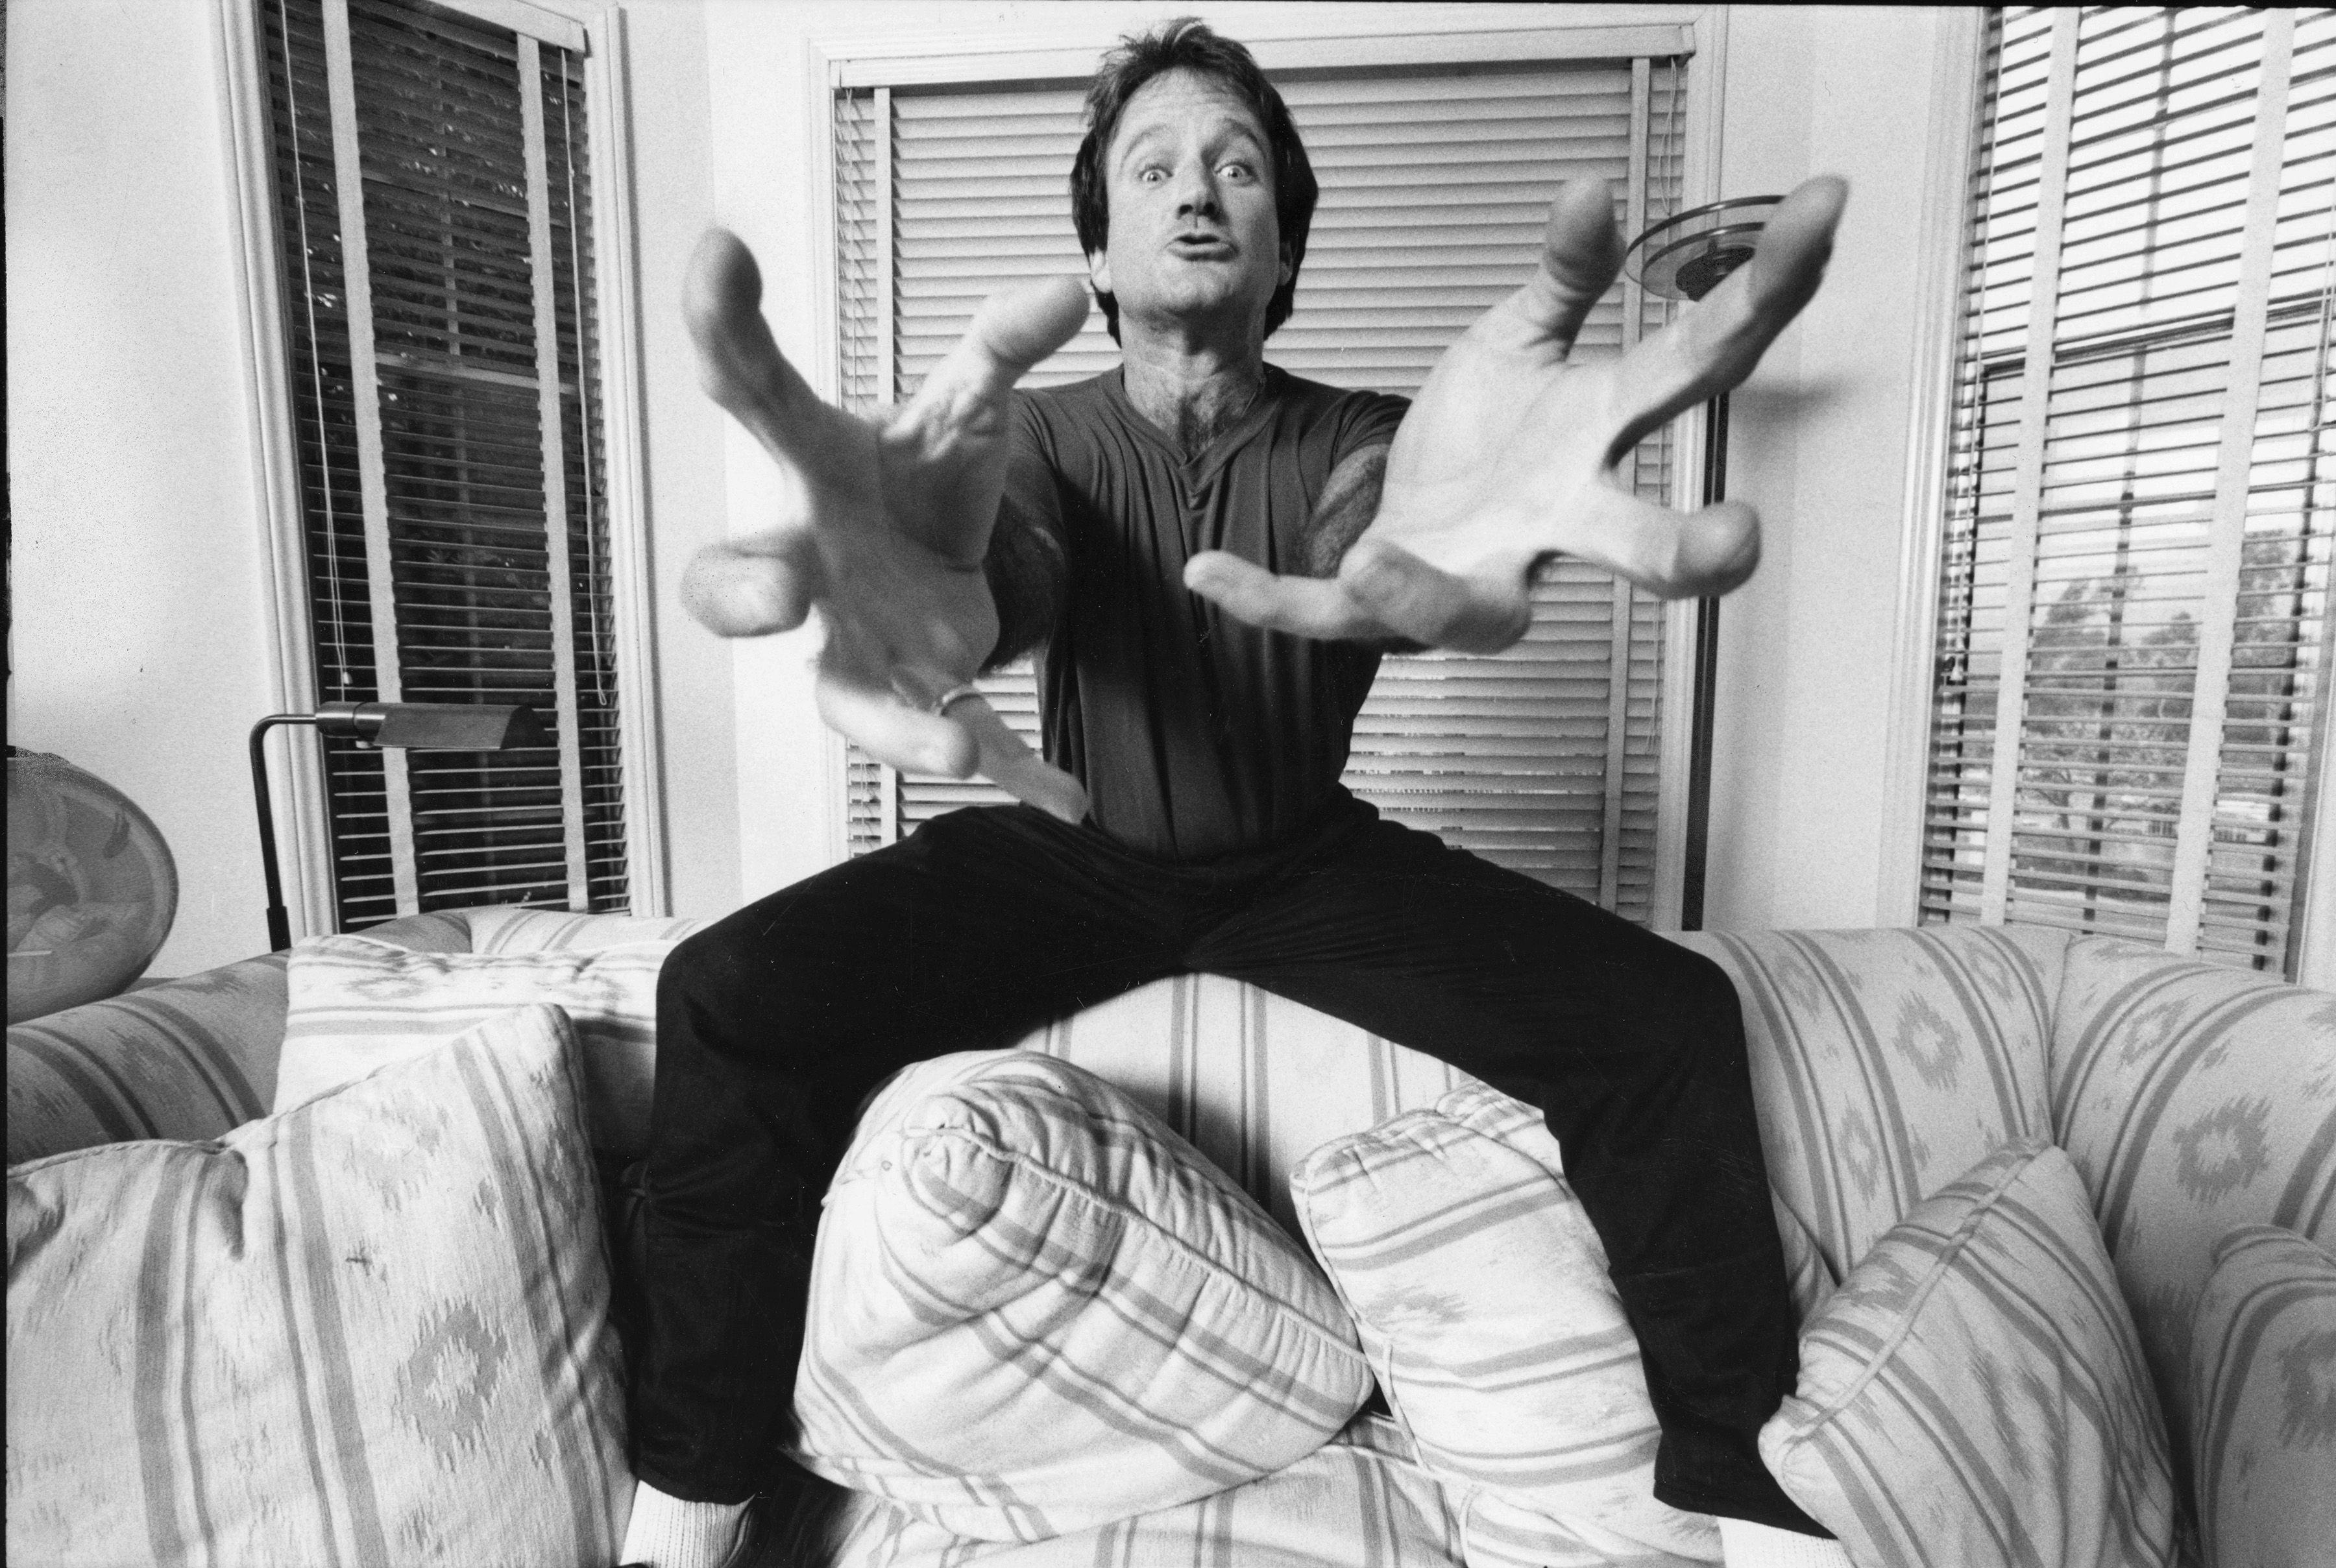 'Robin Williams: Come Inside My Mind' Trailer Looks at the Trials and Triumphs of the Brilliant Comedian